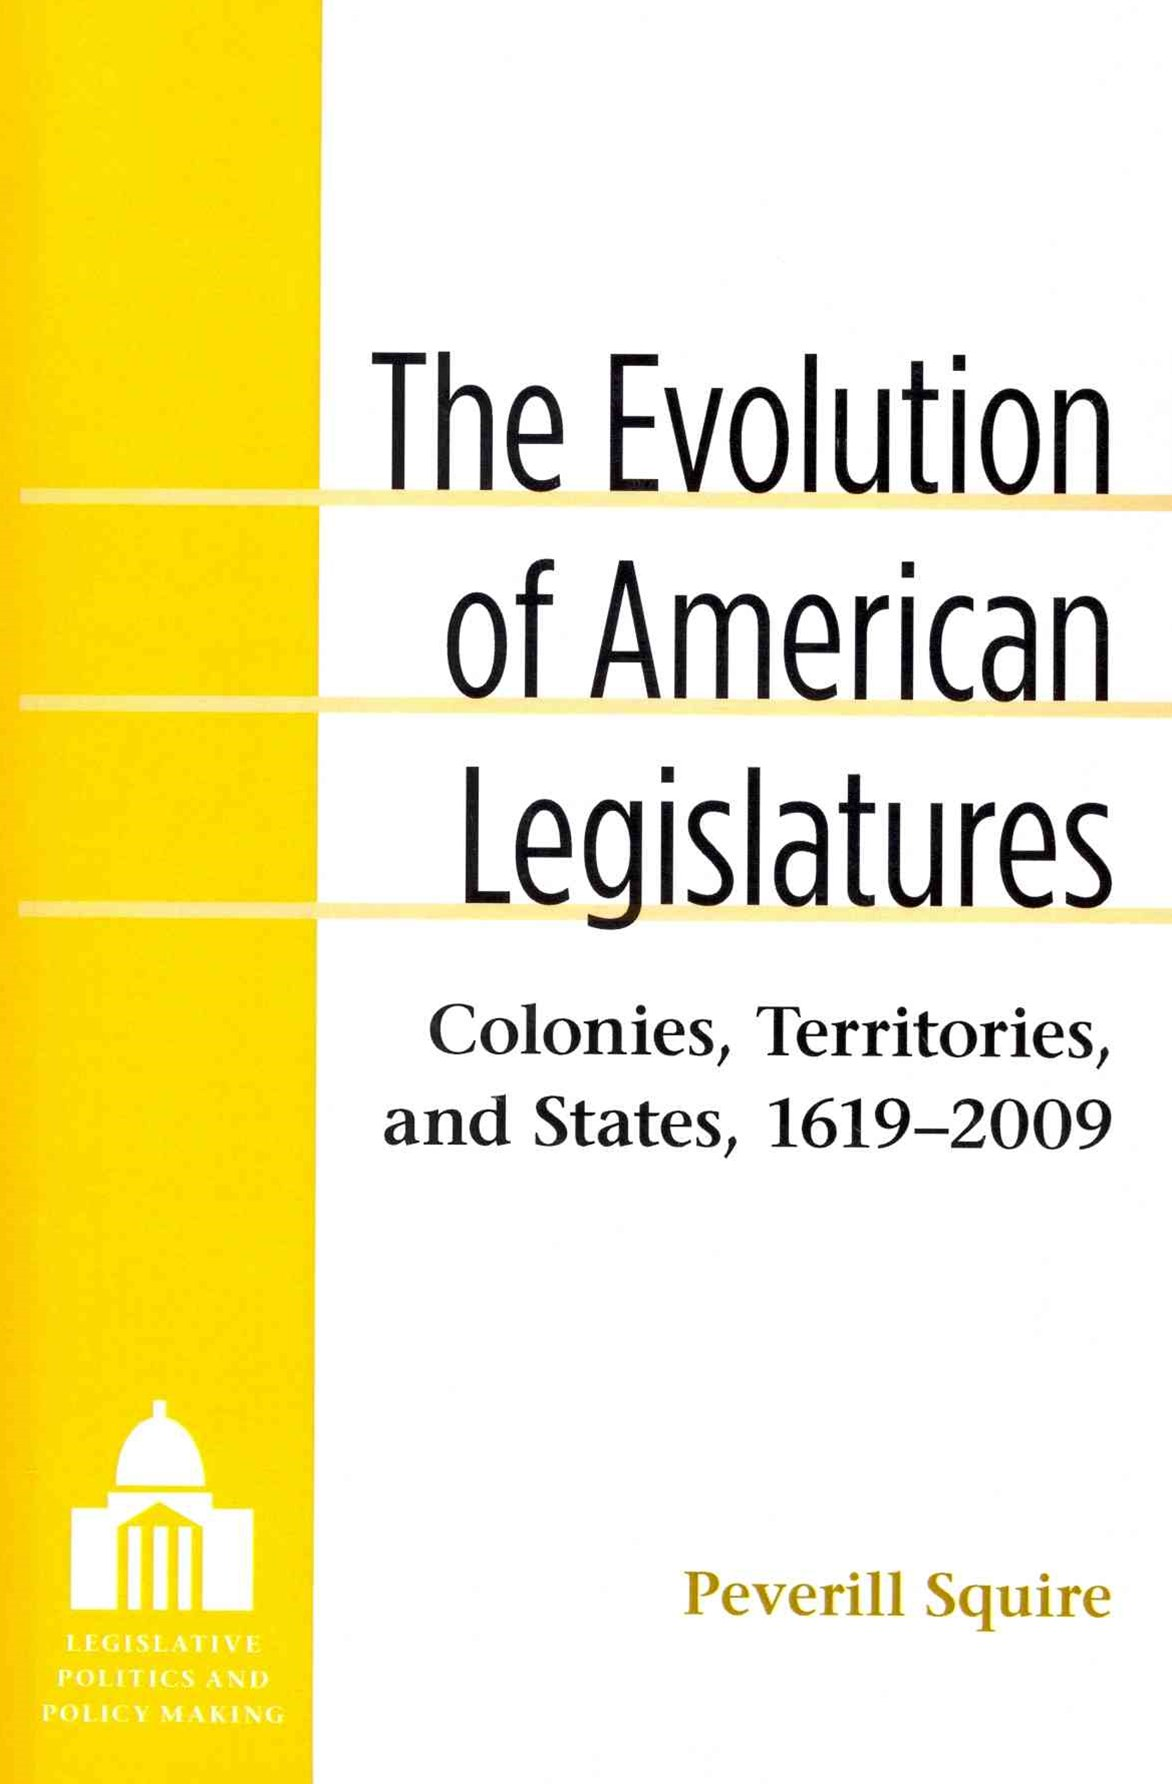 Evolution of American Legislatures